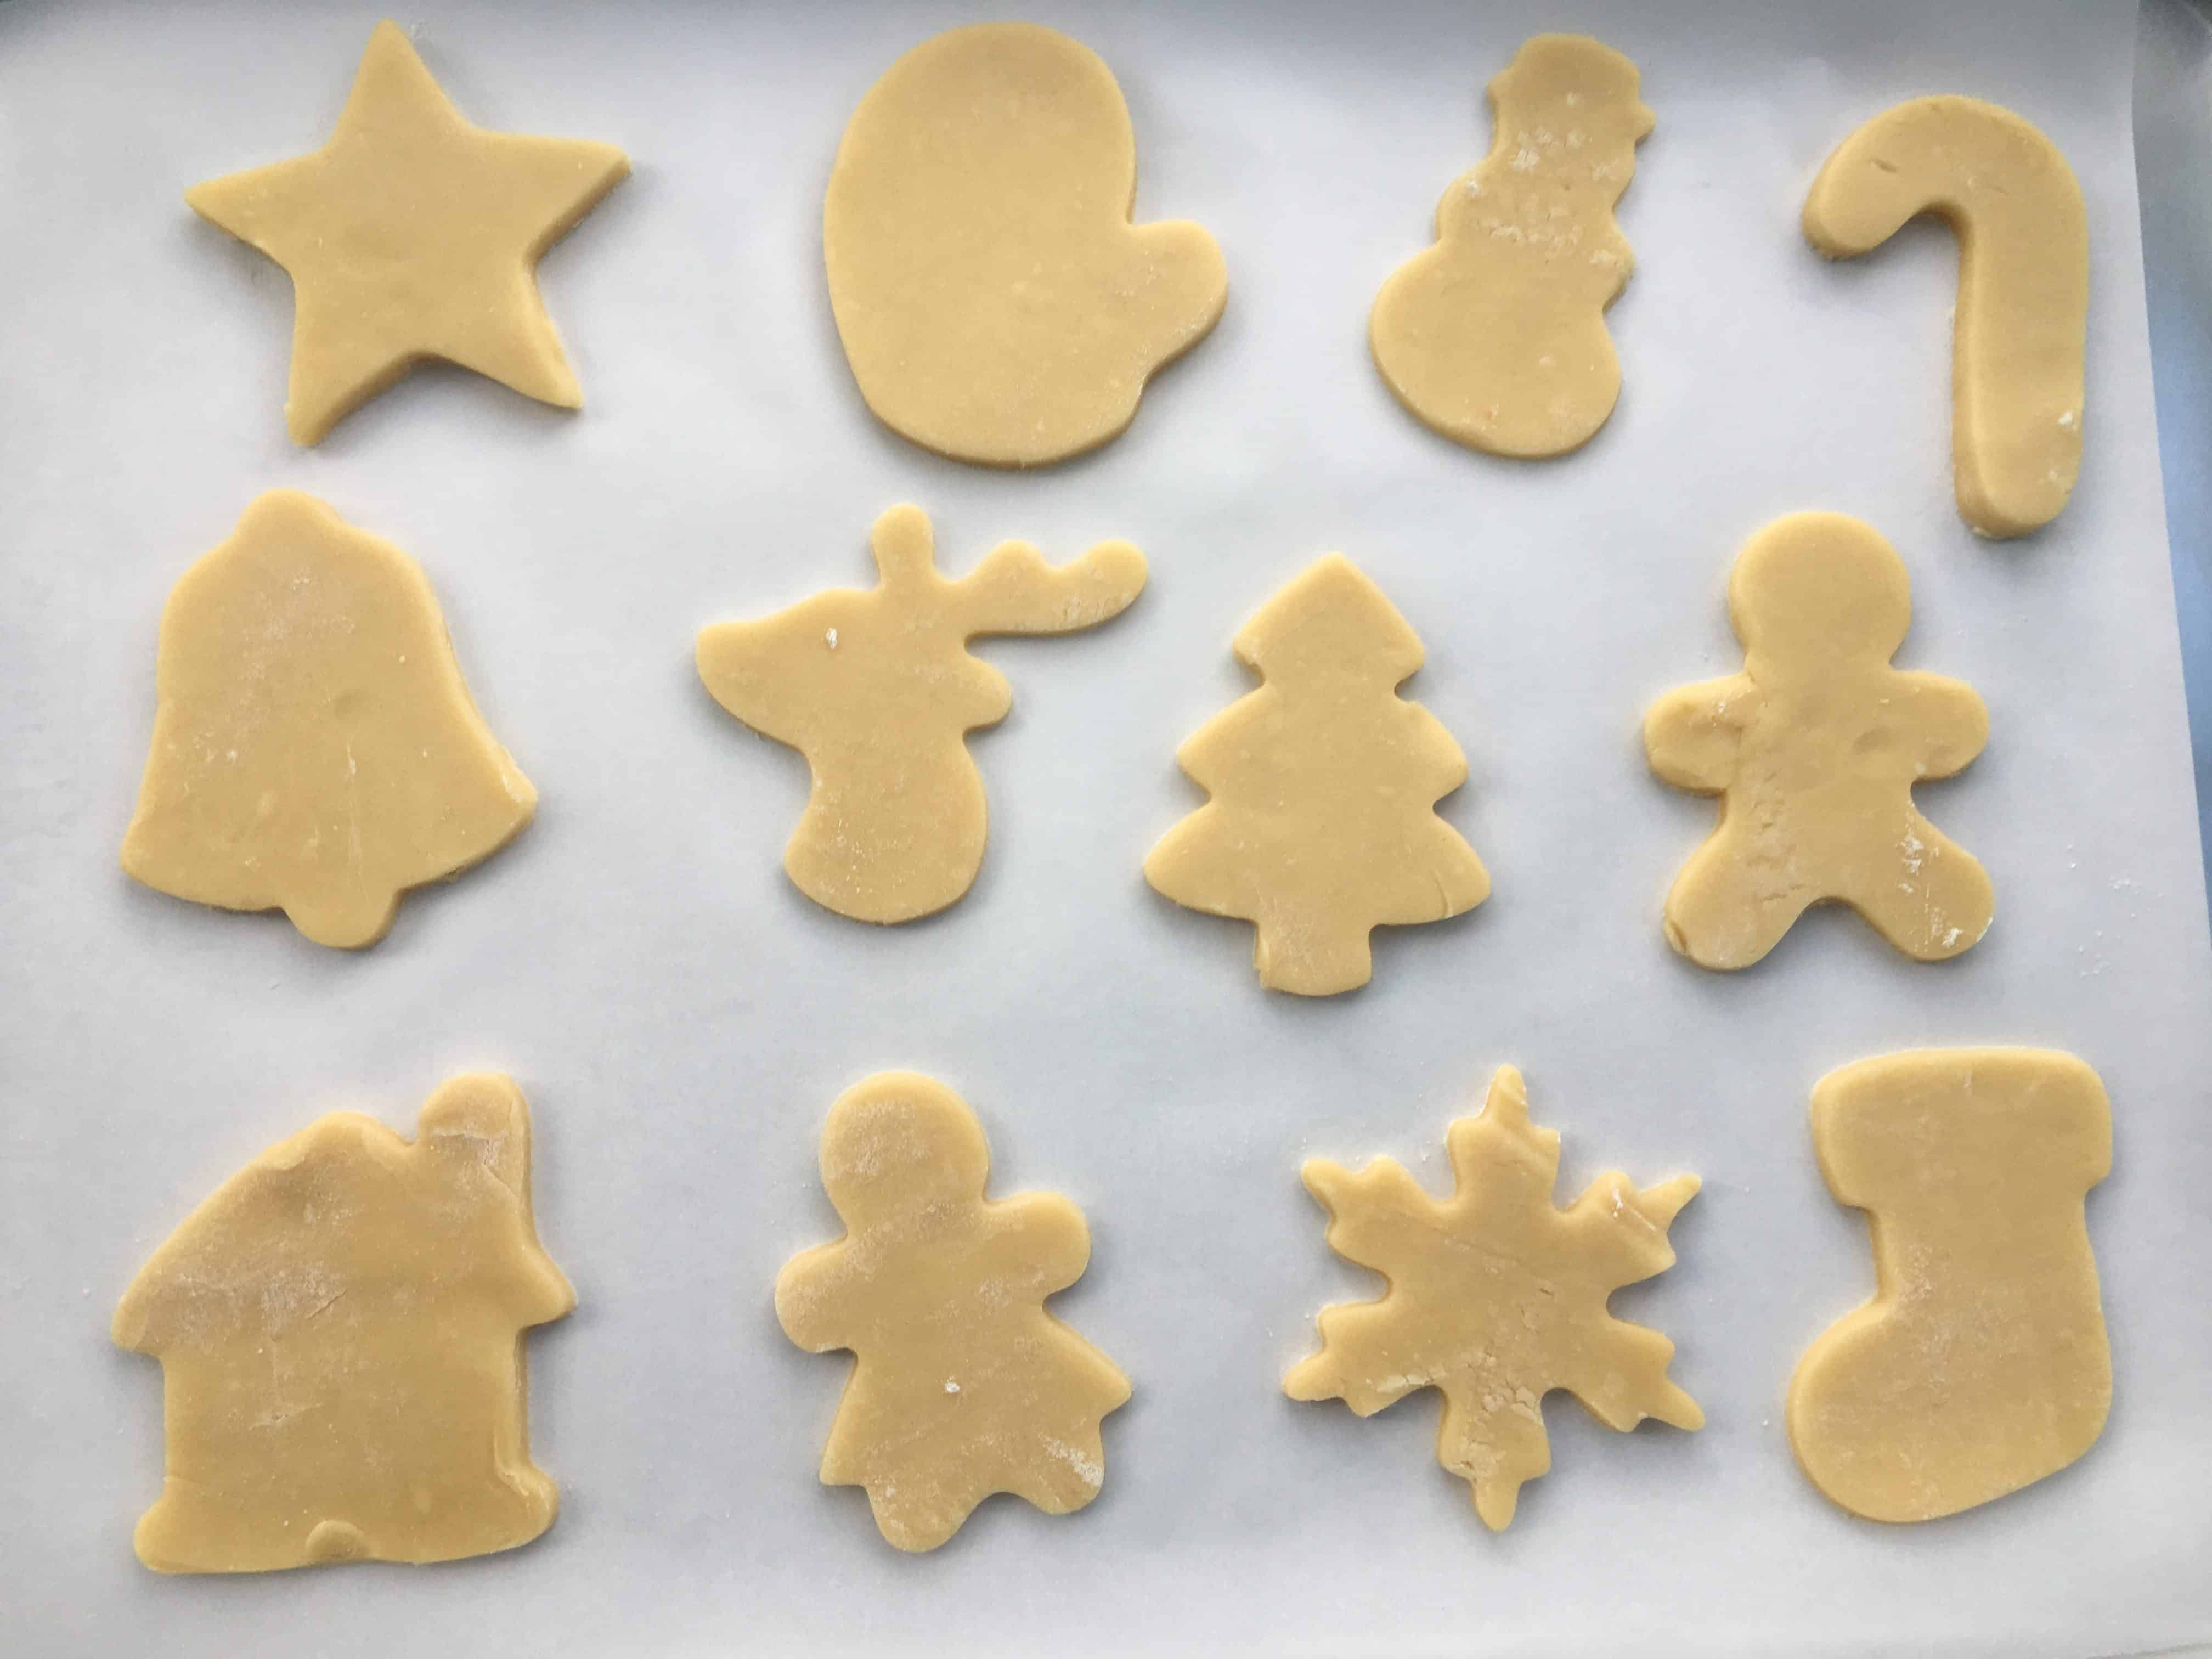 sugar cookies on a baking tray before baking